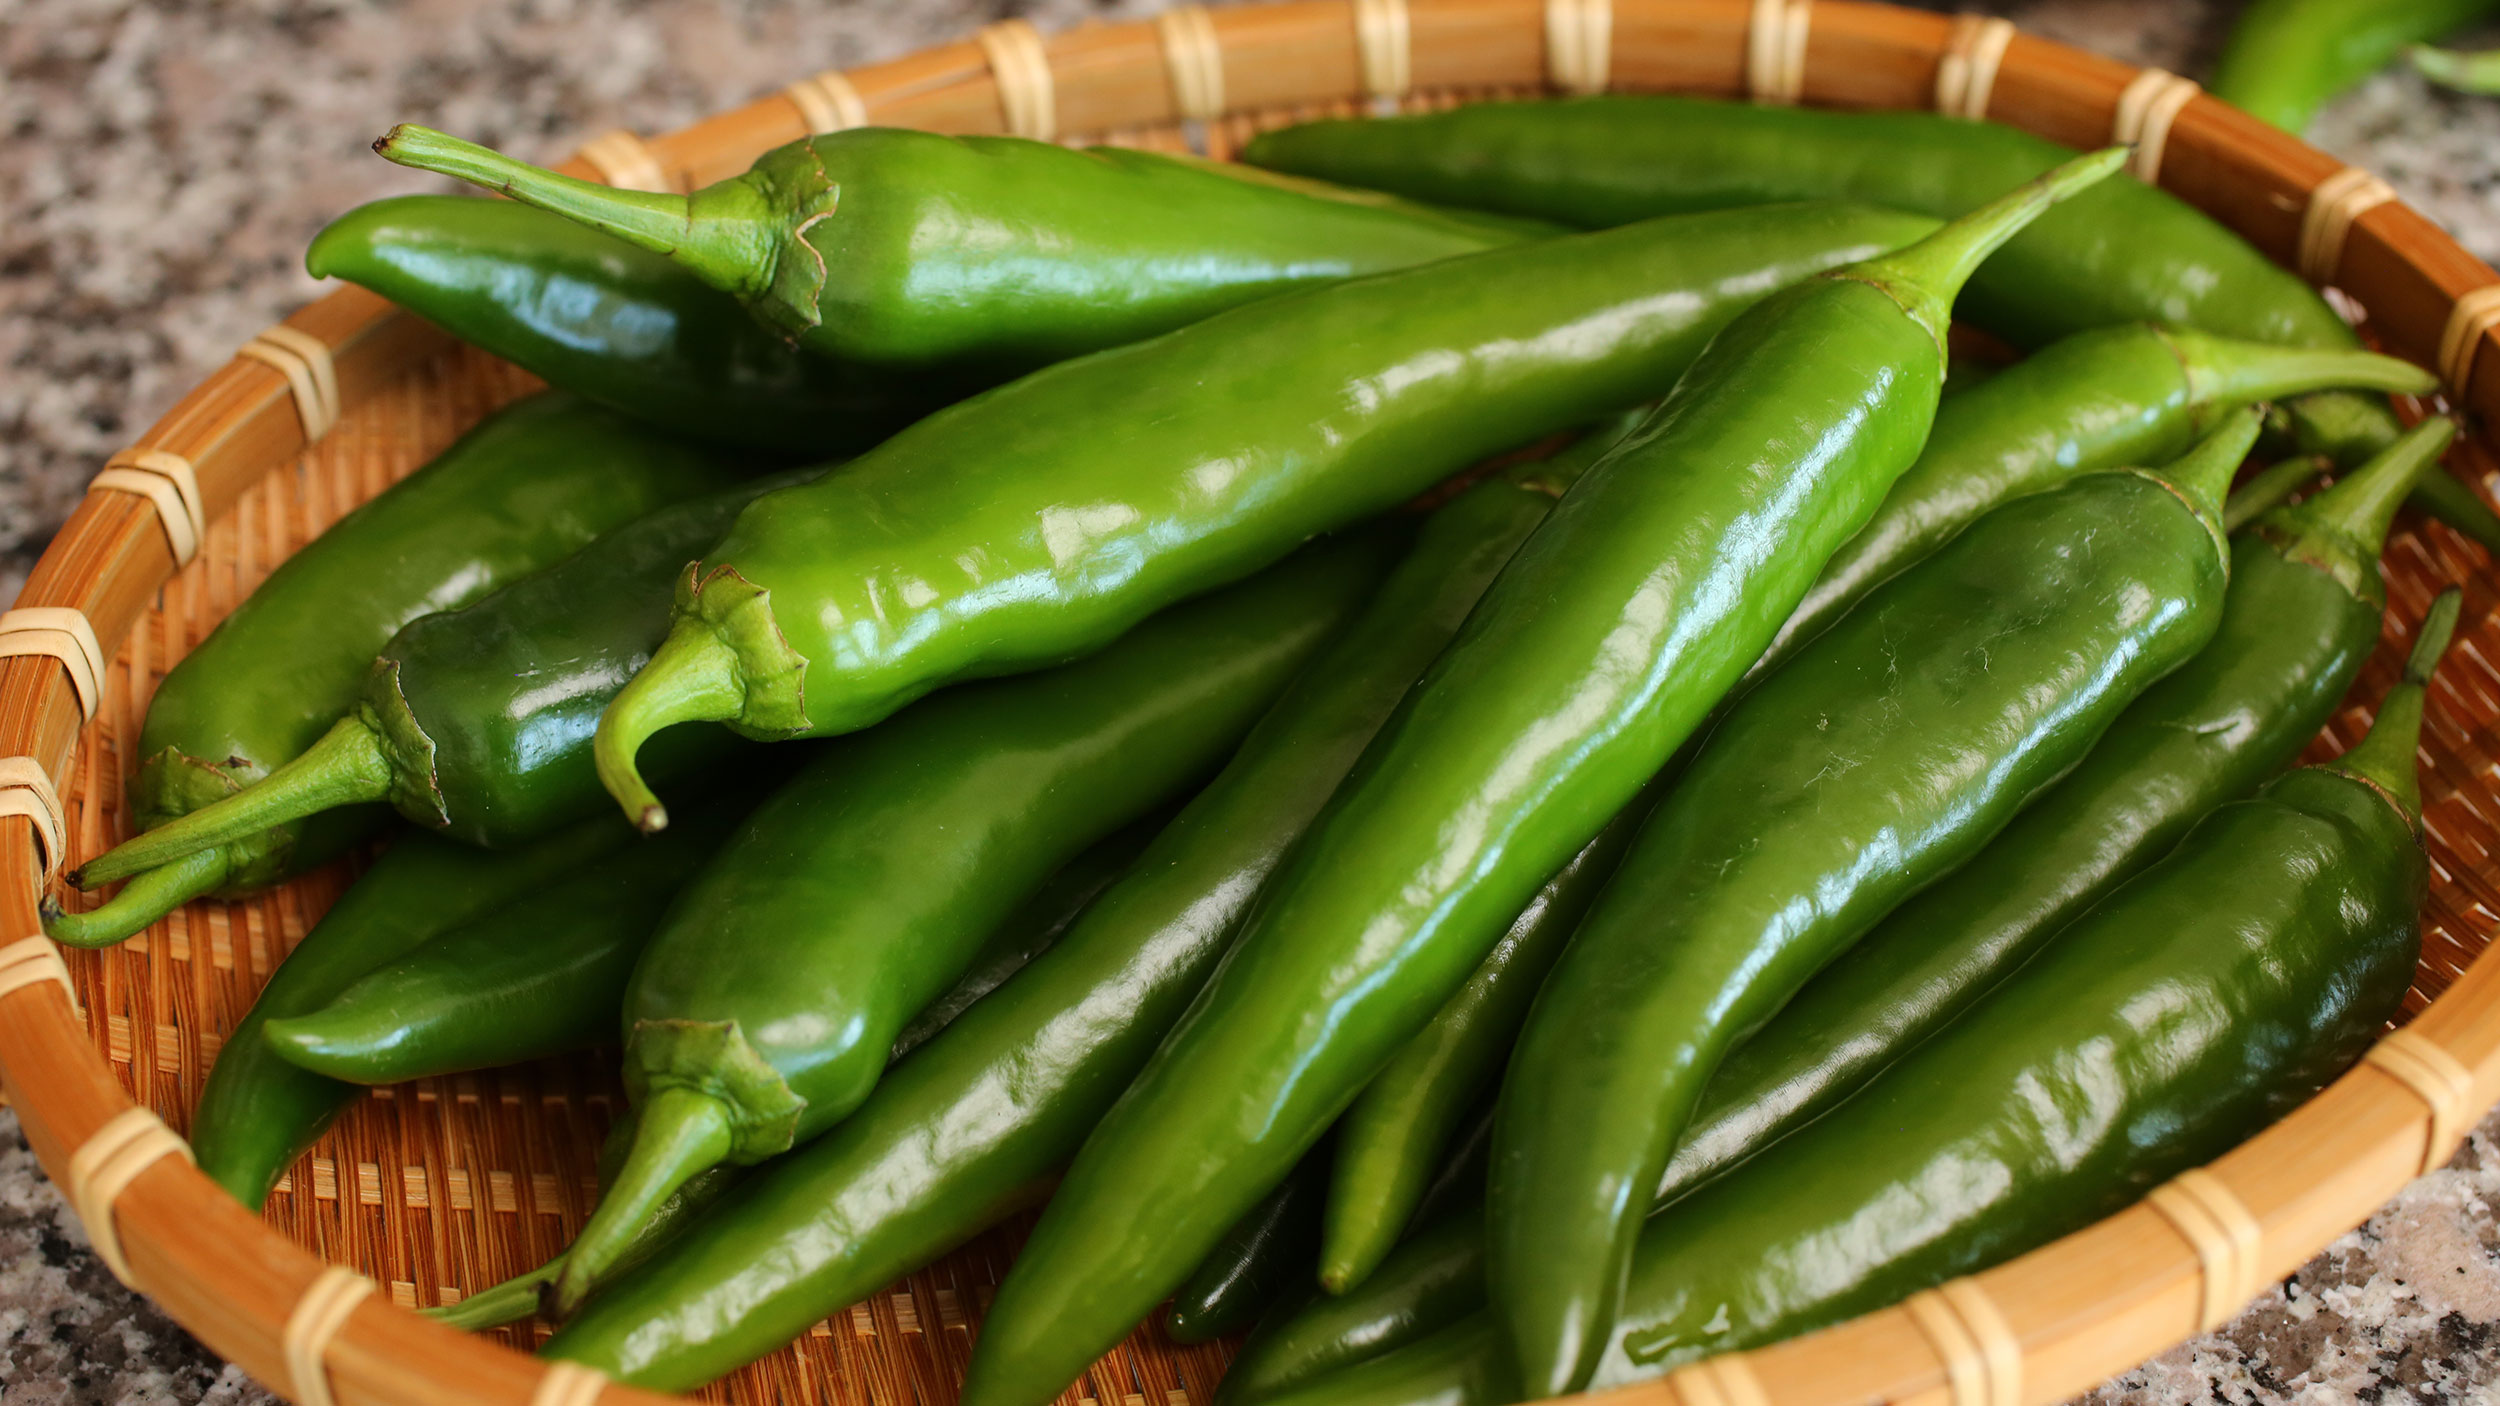 Hot green chillies photo